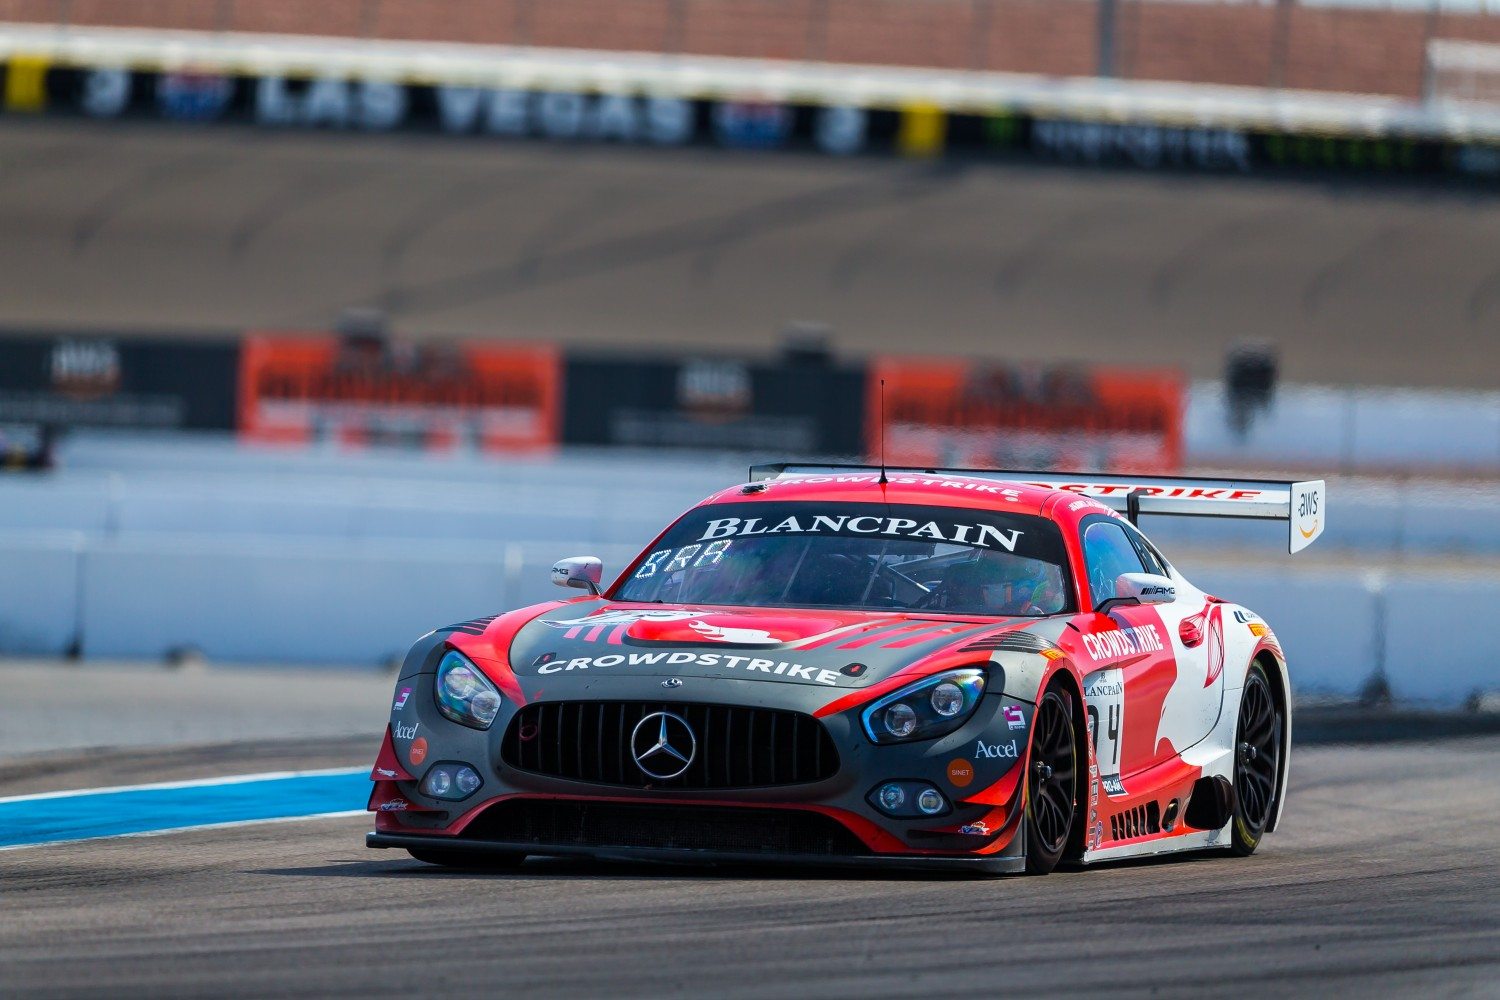 #04 Mercedes-AMG GT3 of George Kurtz and Colin Braun with DXDT Racing  2019 Blancpain GT World Challenge America - Las Vegas, Las Vegas NV | Fabian Lagunas/SRO